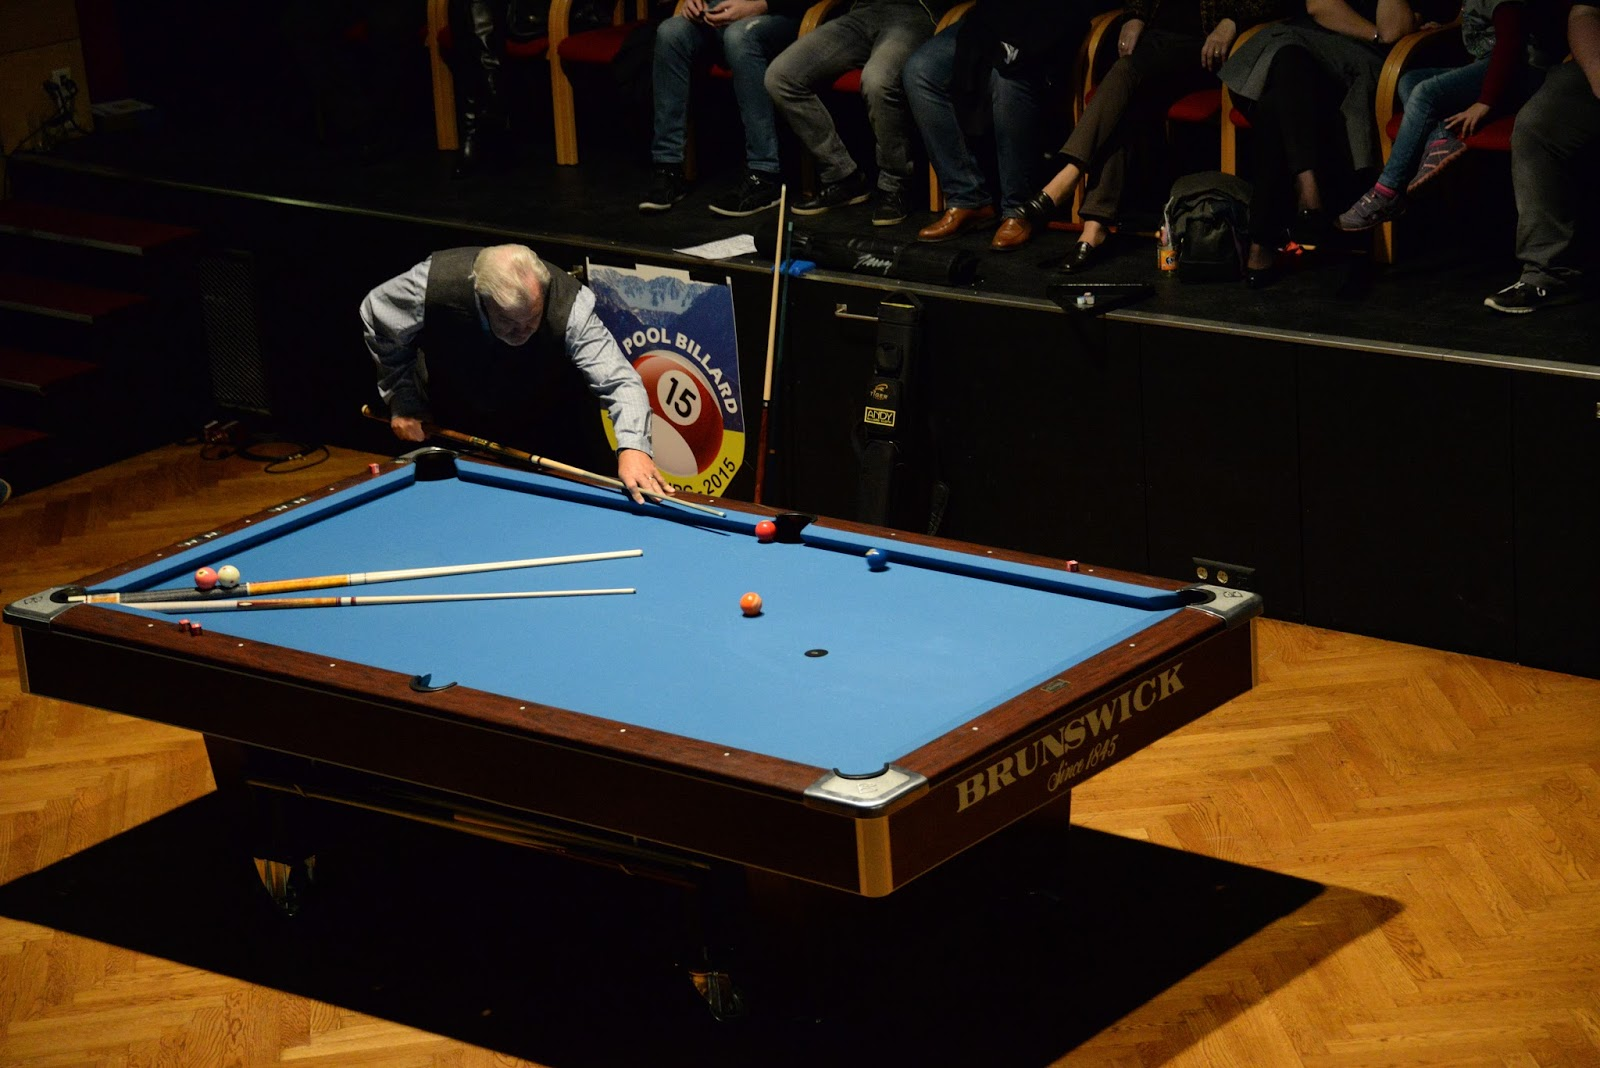 Berts Travels POOL BILLARD - Masse pool table